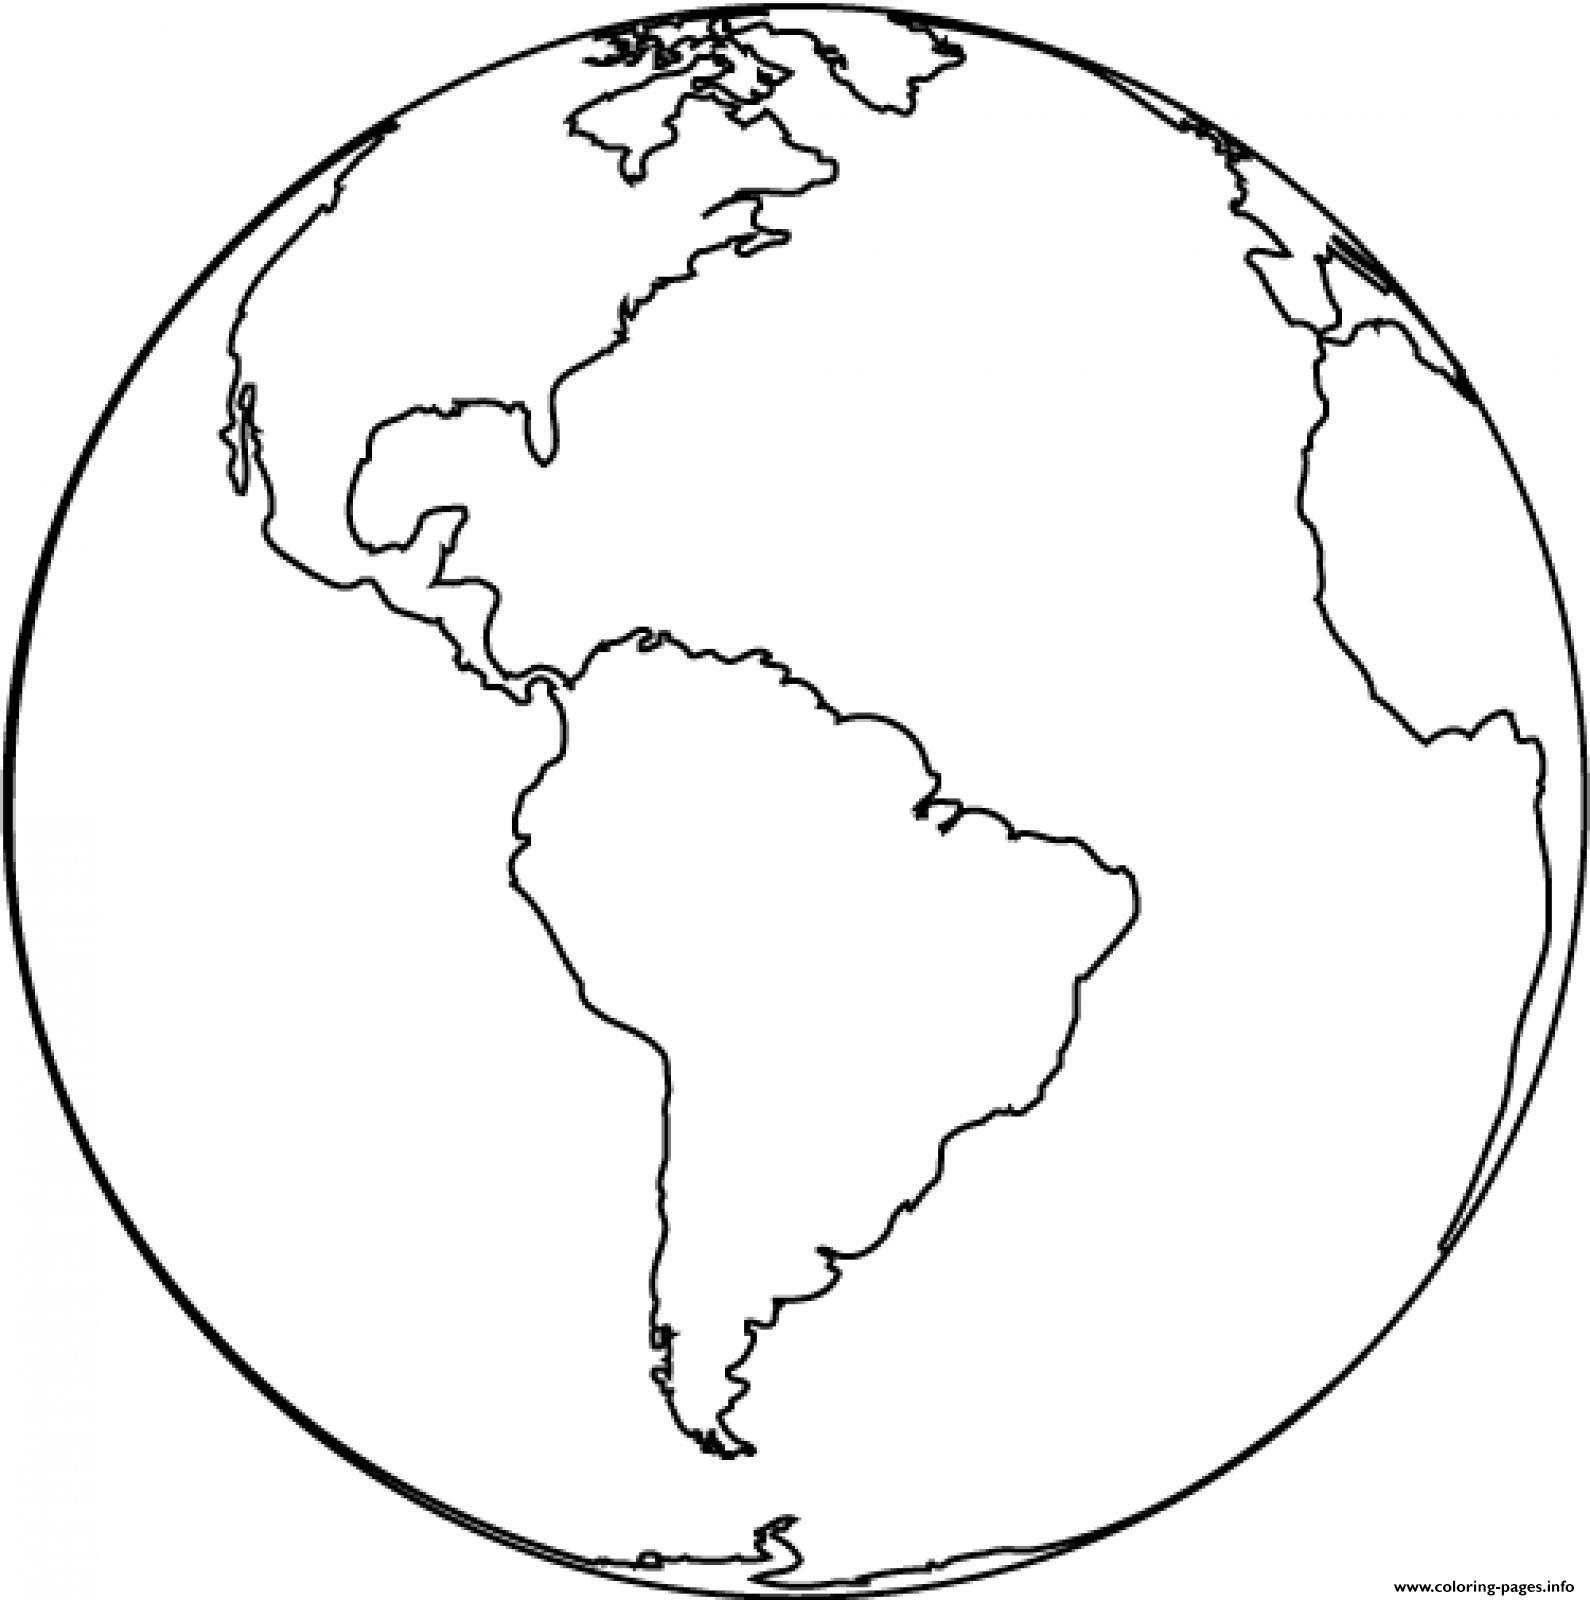 Coloring pages earth - Coloring Pages Earth 9